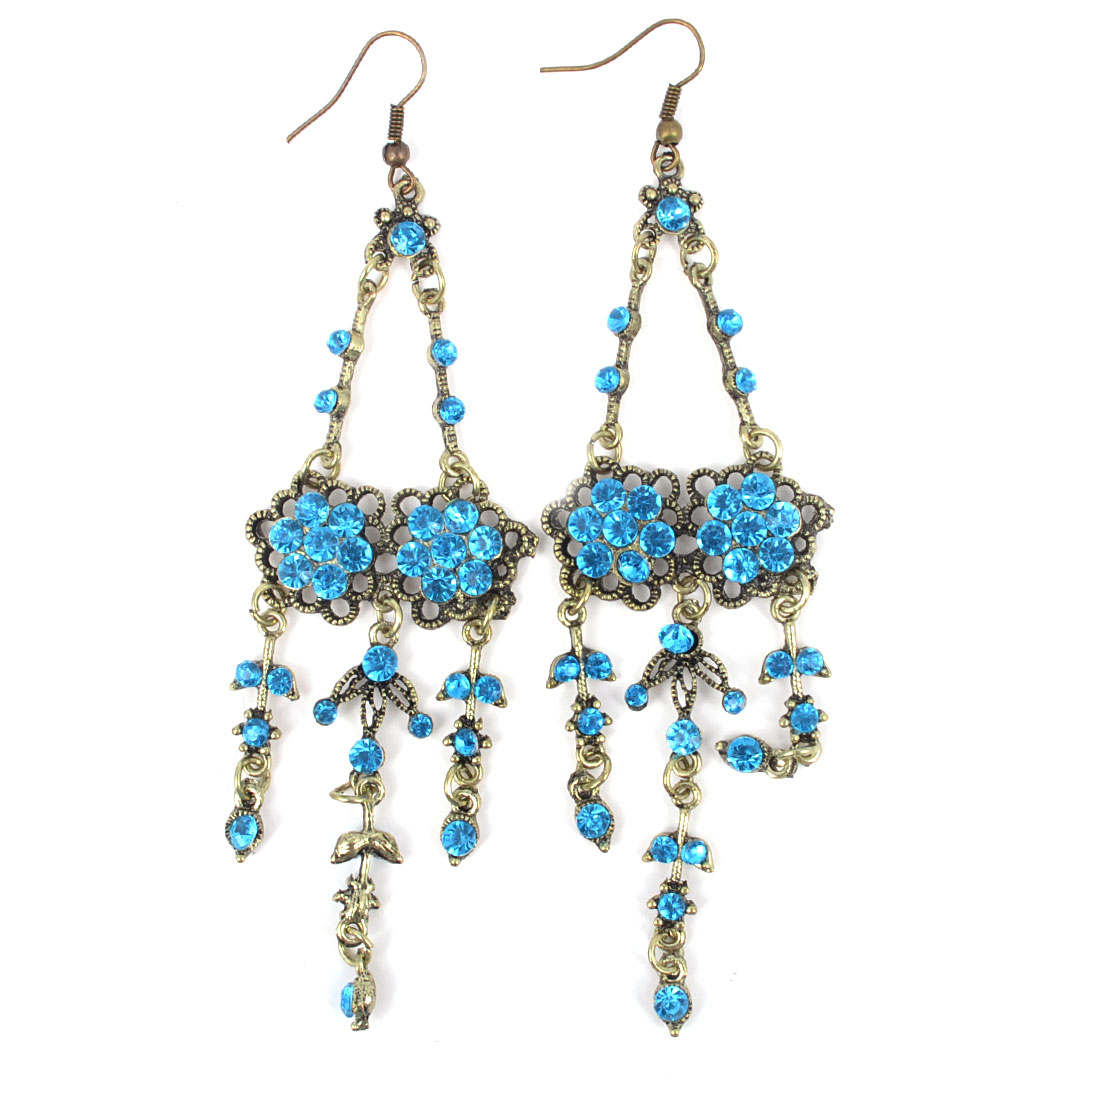 Pair Blue Rhinestone Accent Bronze Tone Flower Shape Fish Hook Earrings for Lady